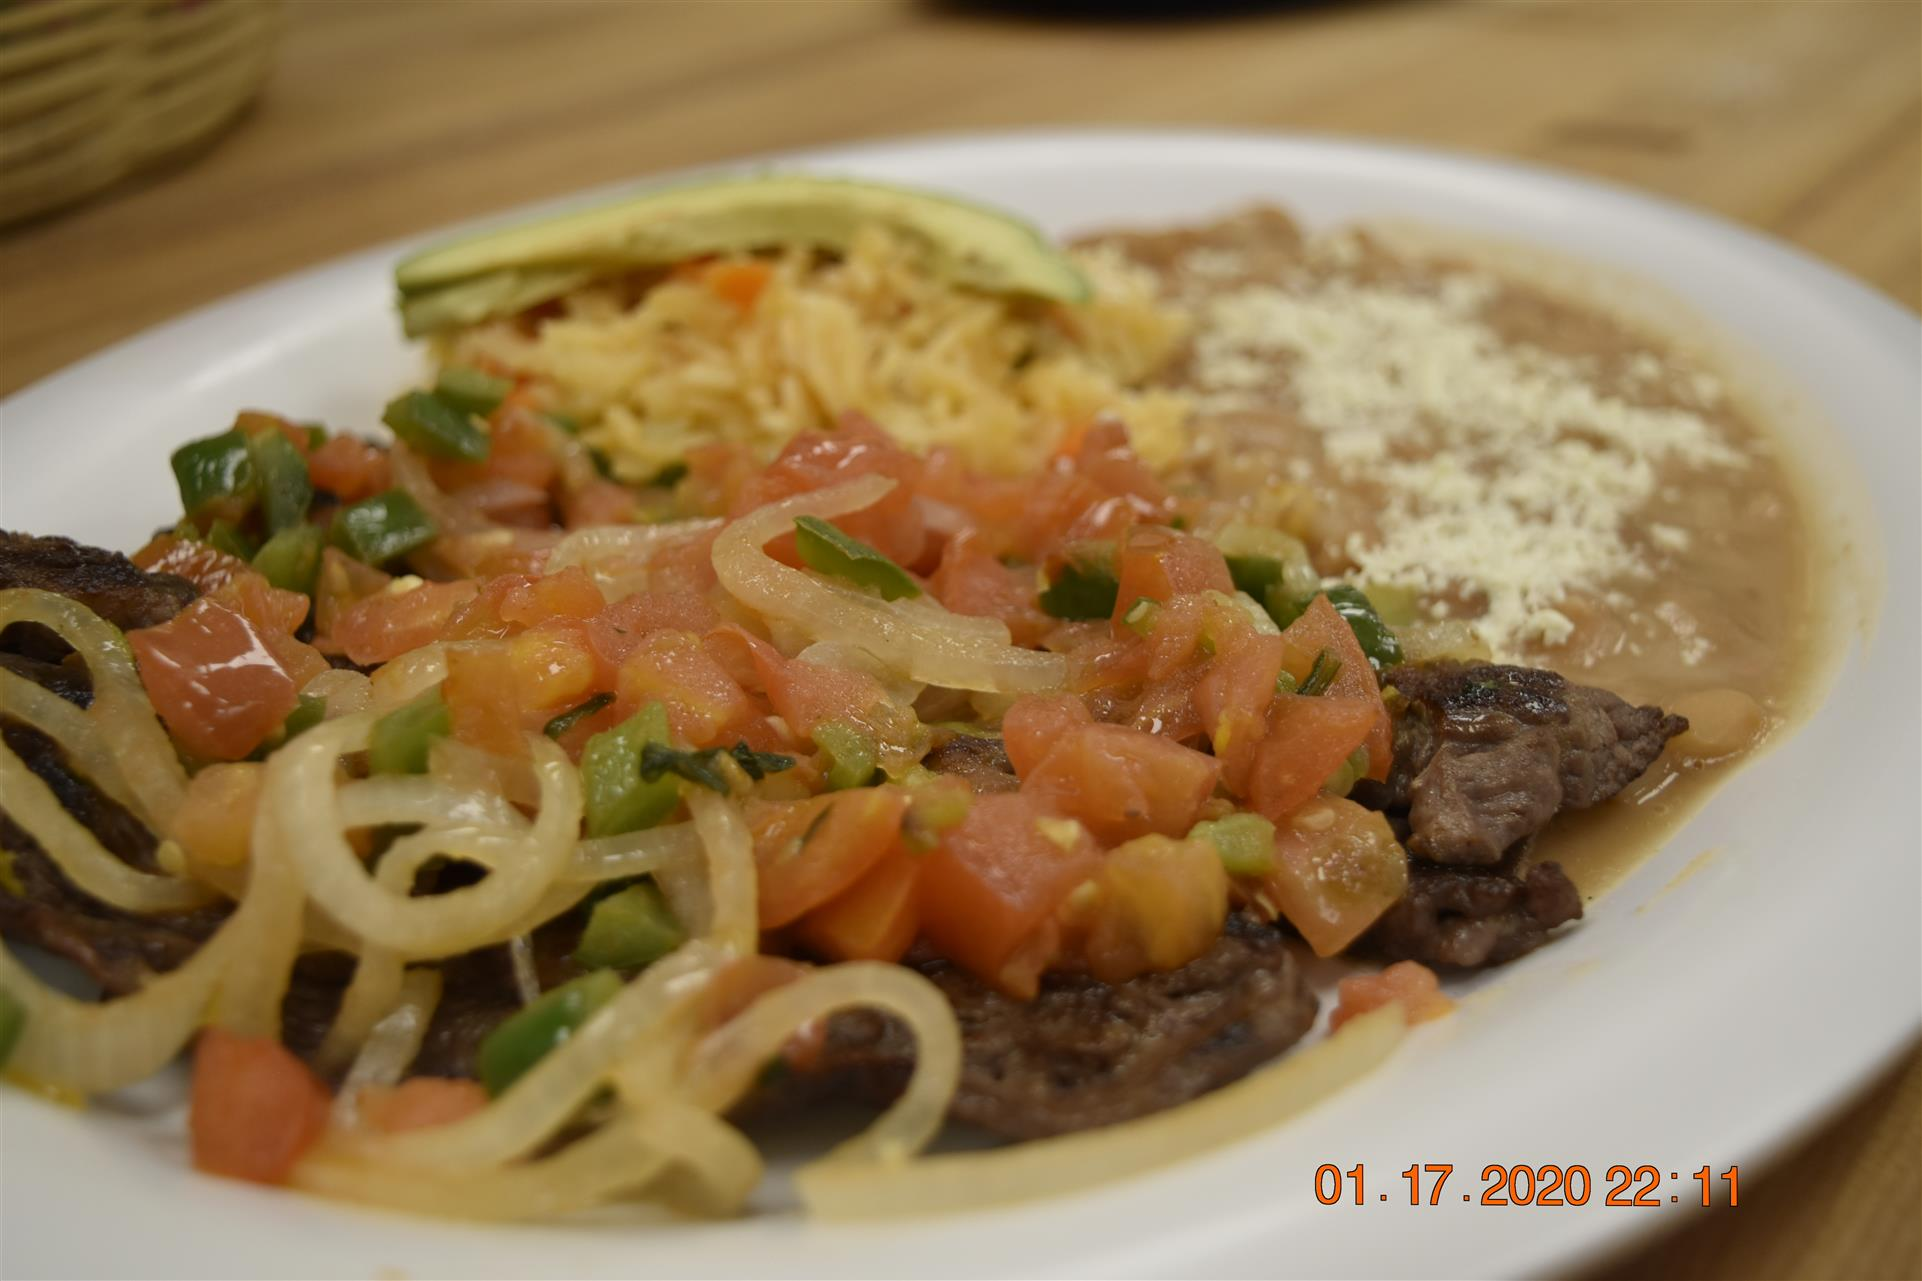 fajita with steak, vegetables and side of beans